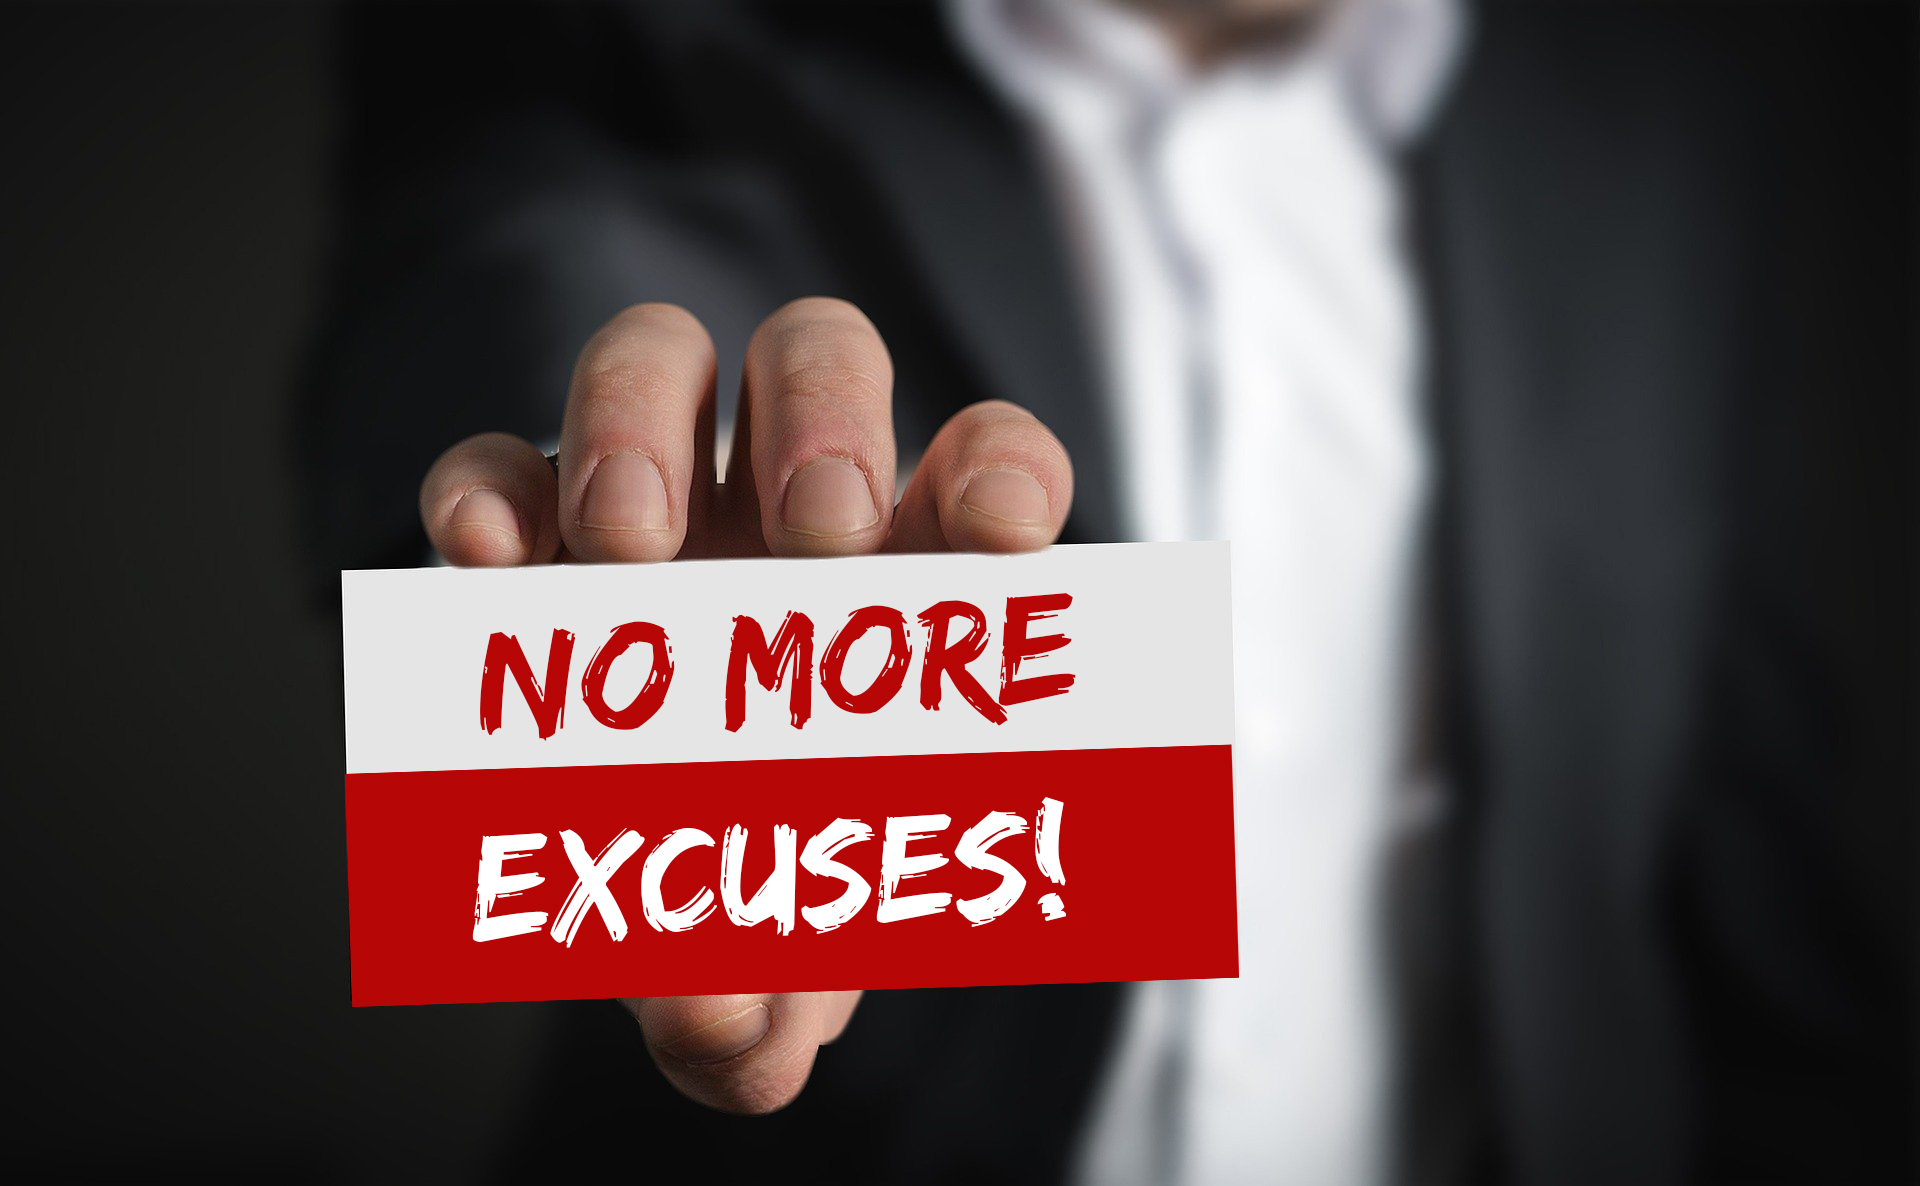 No excuses - get it done!